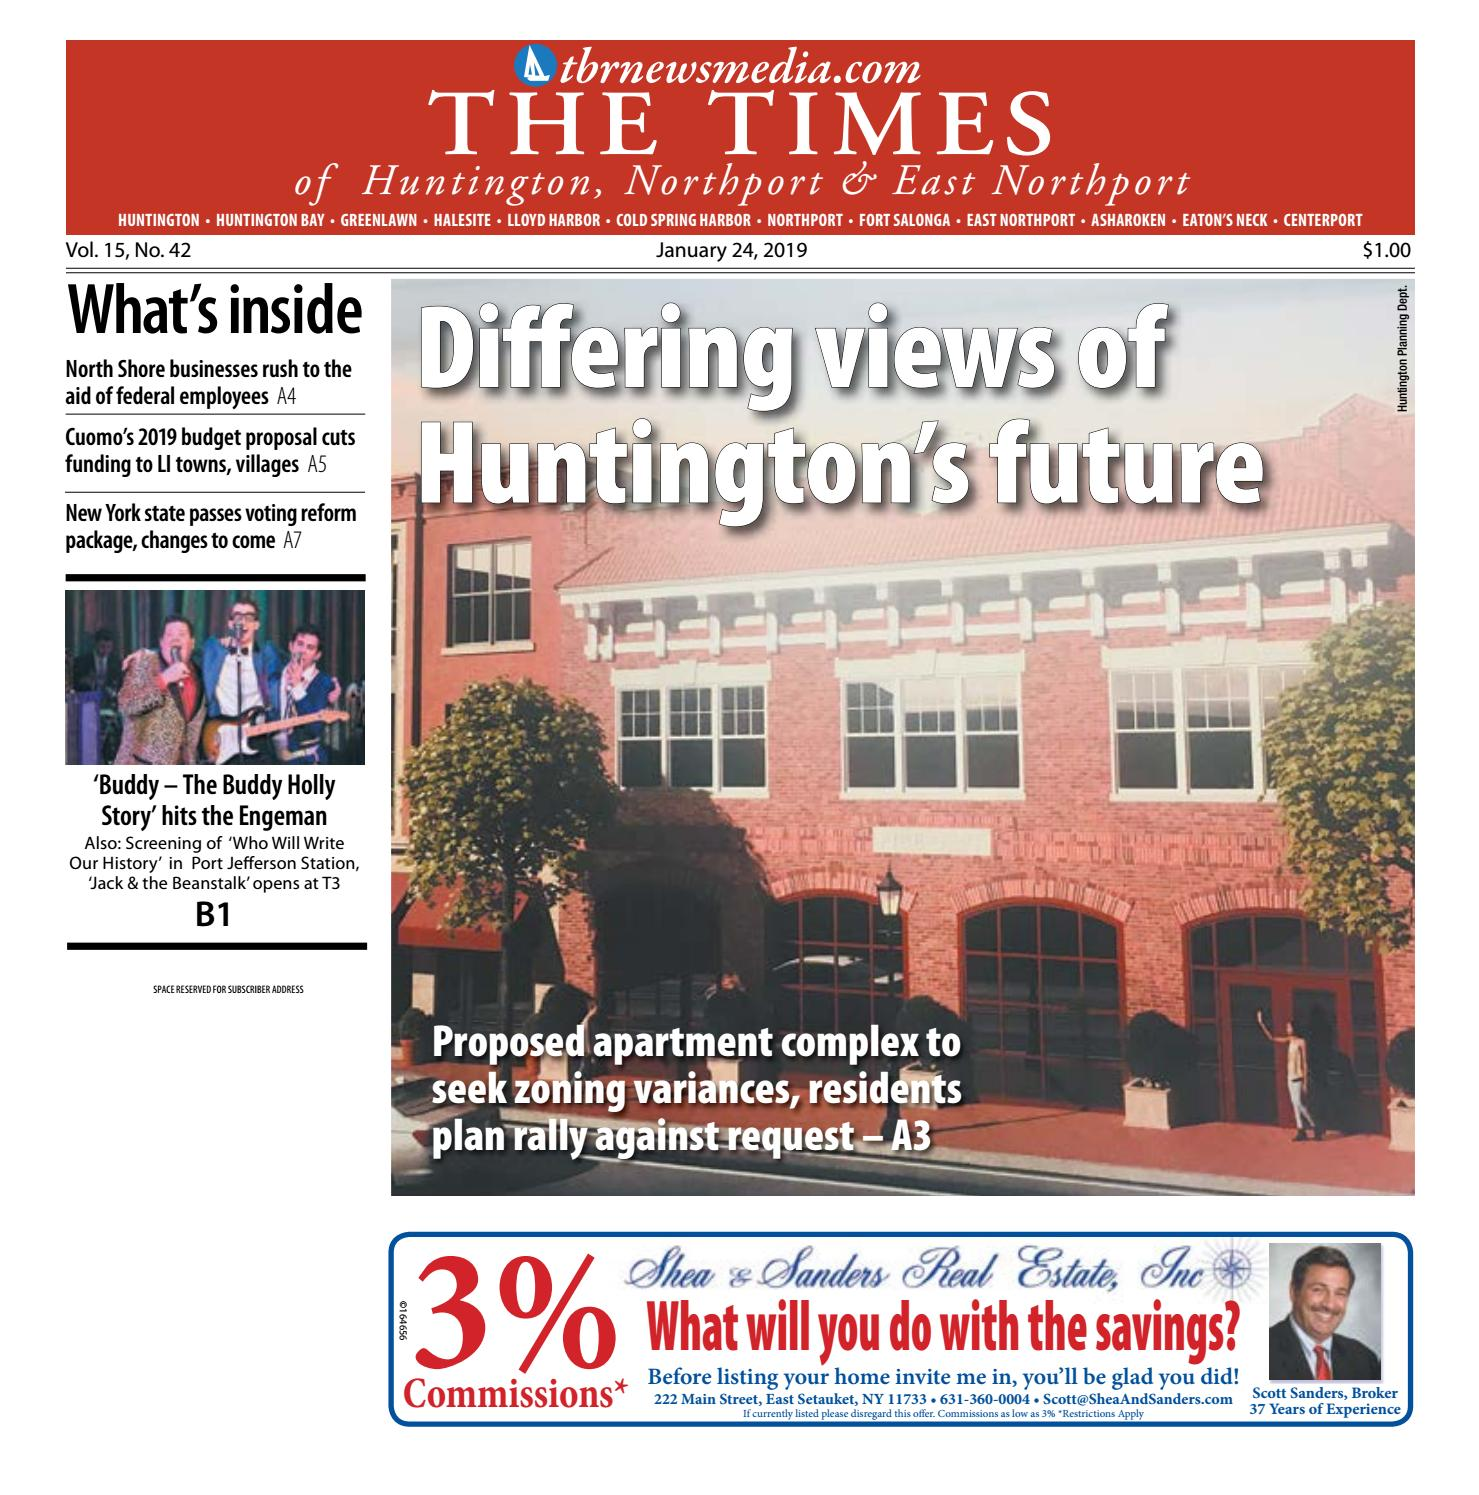 The Times of Huntington-Northport - January 24, 2019 by TBR